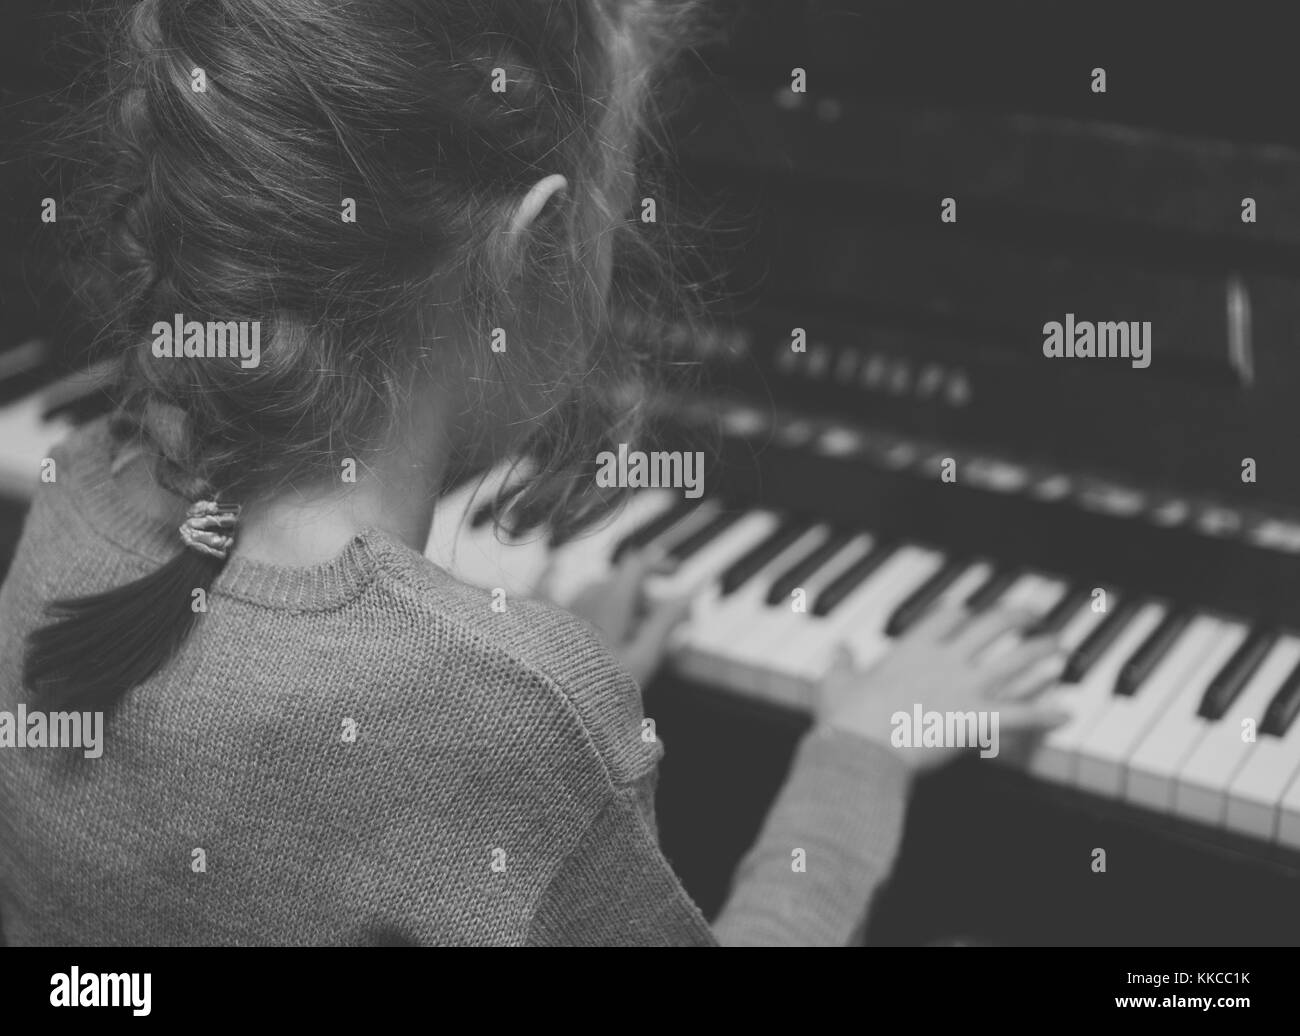 Little girl learning to play the piano. Black and white. - Stock Image